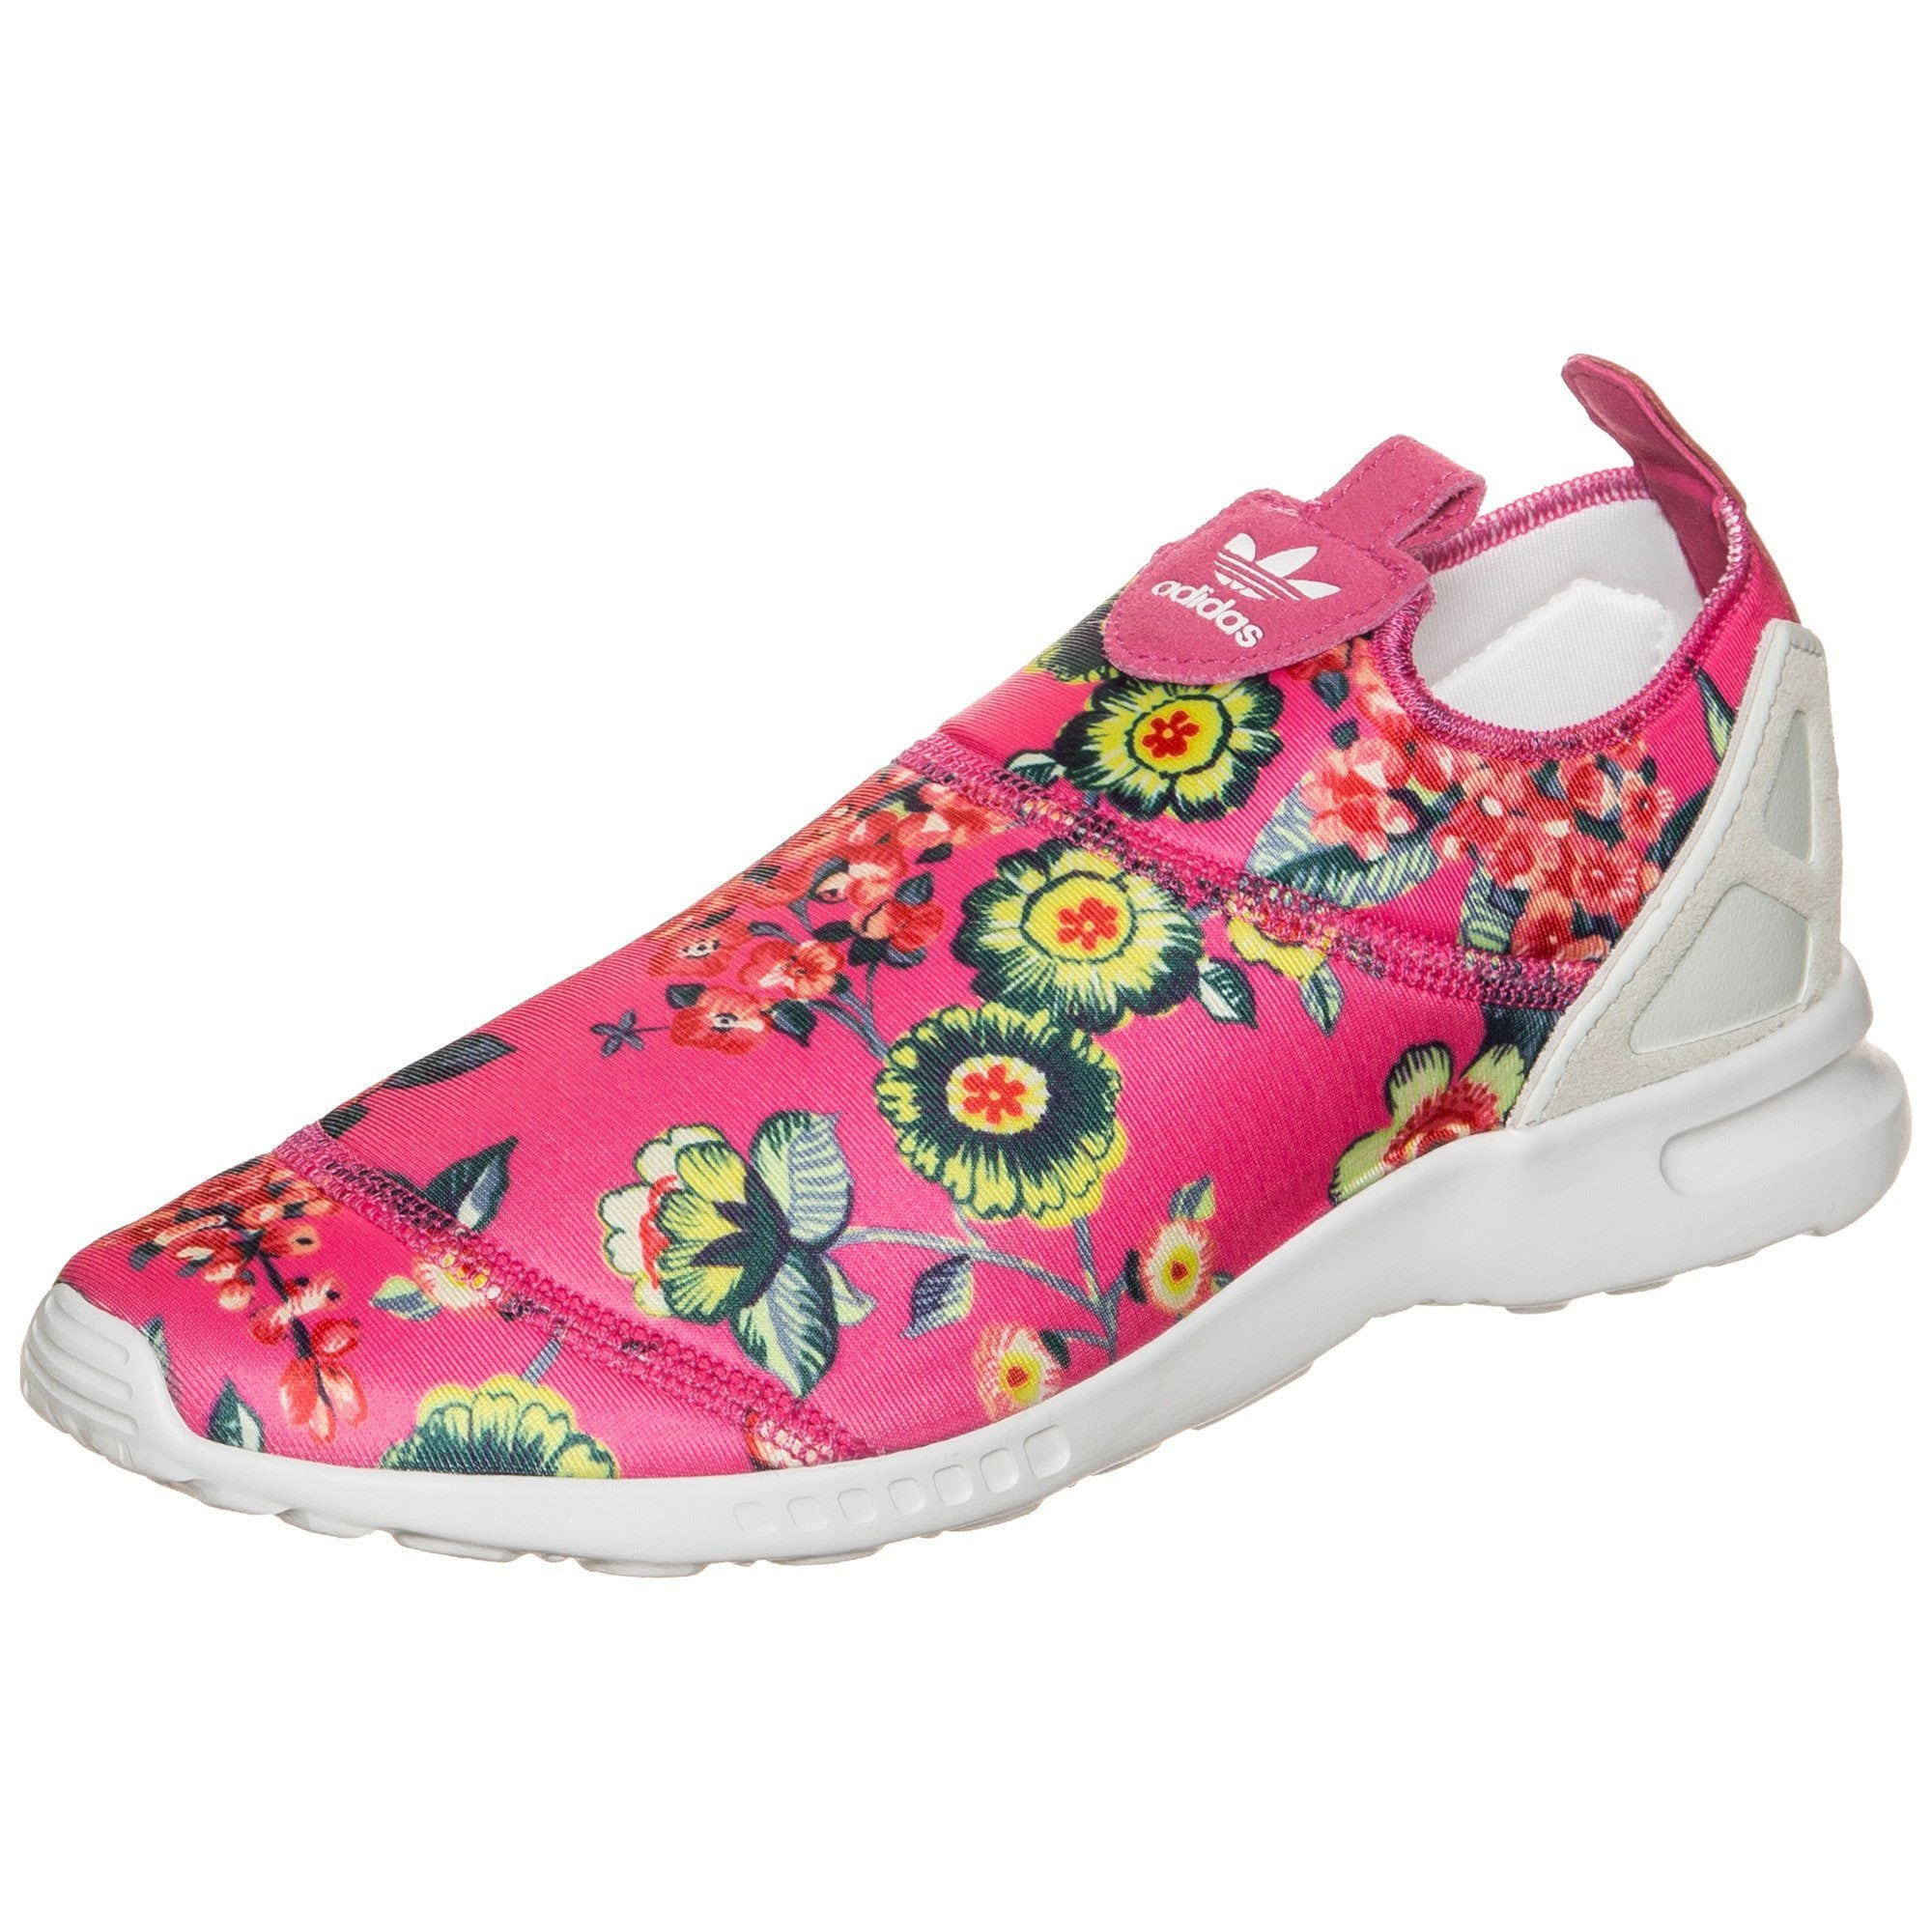 7e1dad40f82142 Bildquelle  adidas Originals ZX Flux Smooth Slip-On Sneaker Damen.  Kundenbetreuung per Telefon